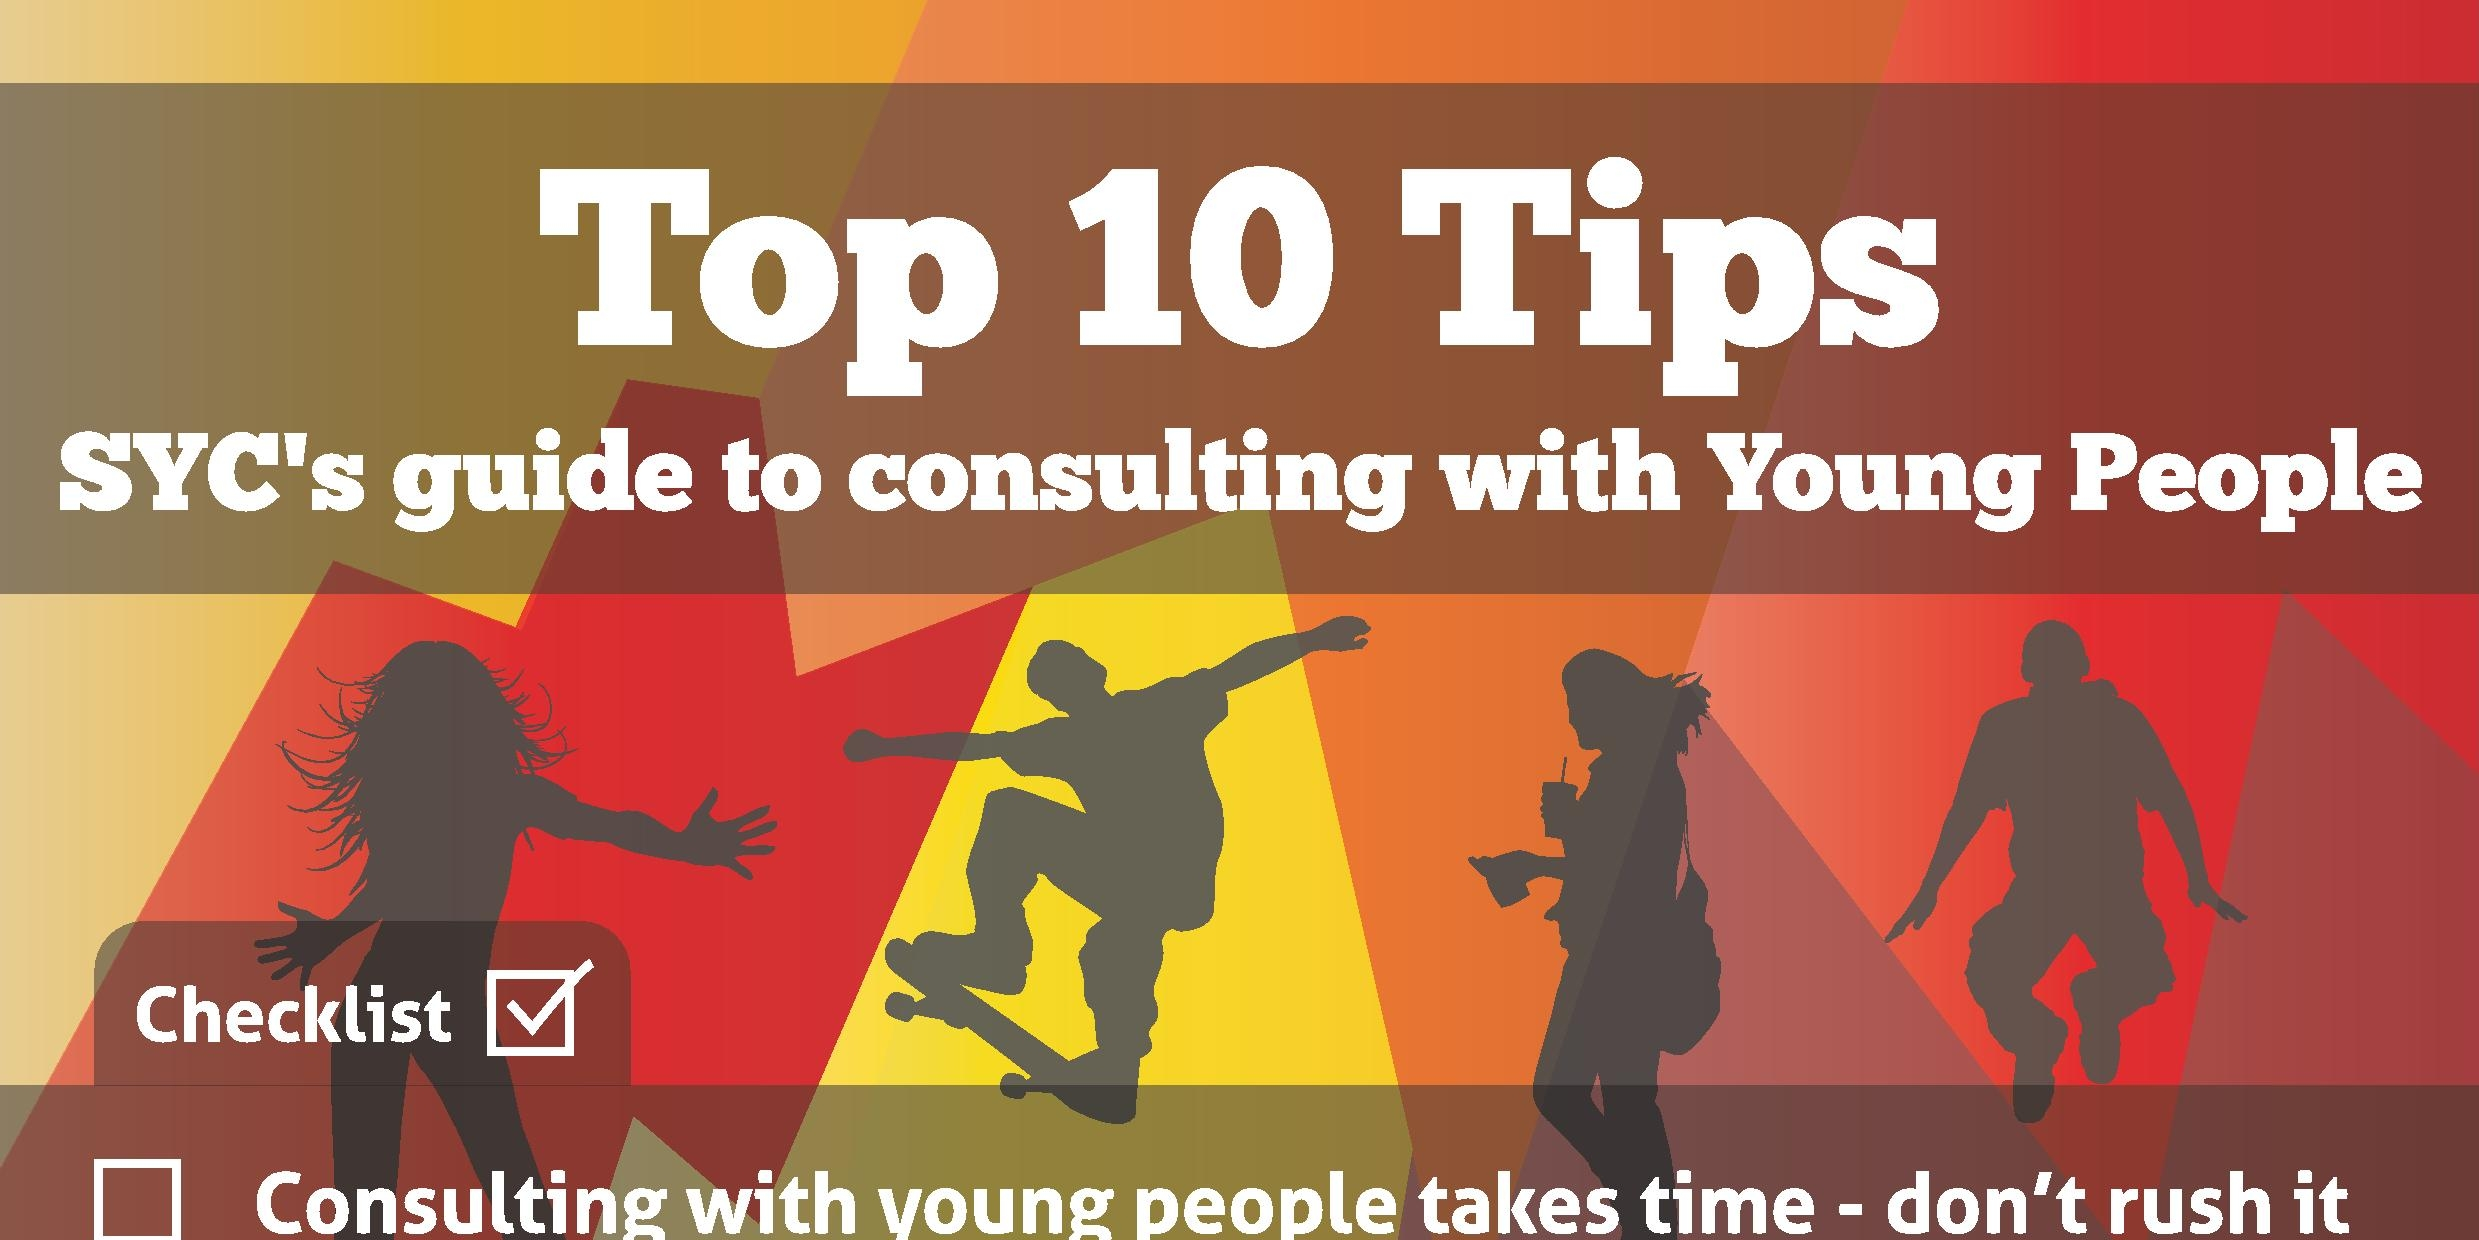 SYC top 10 tips to consulting with young people